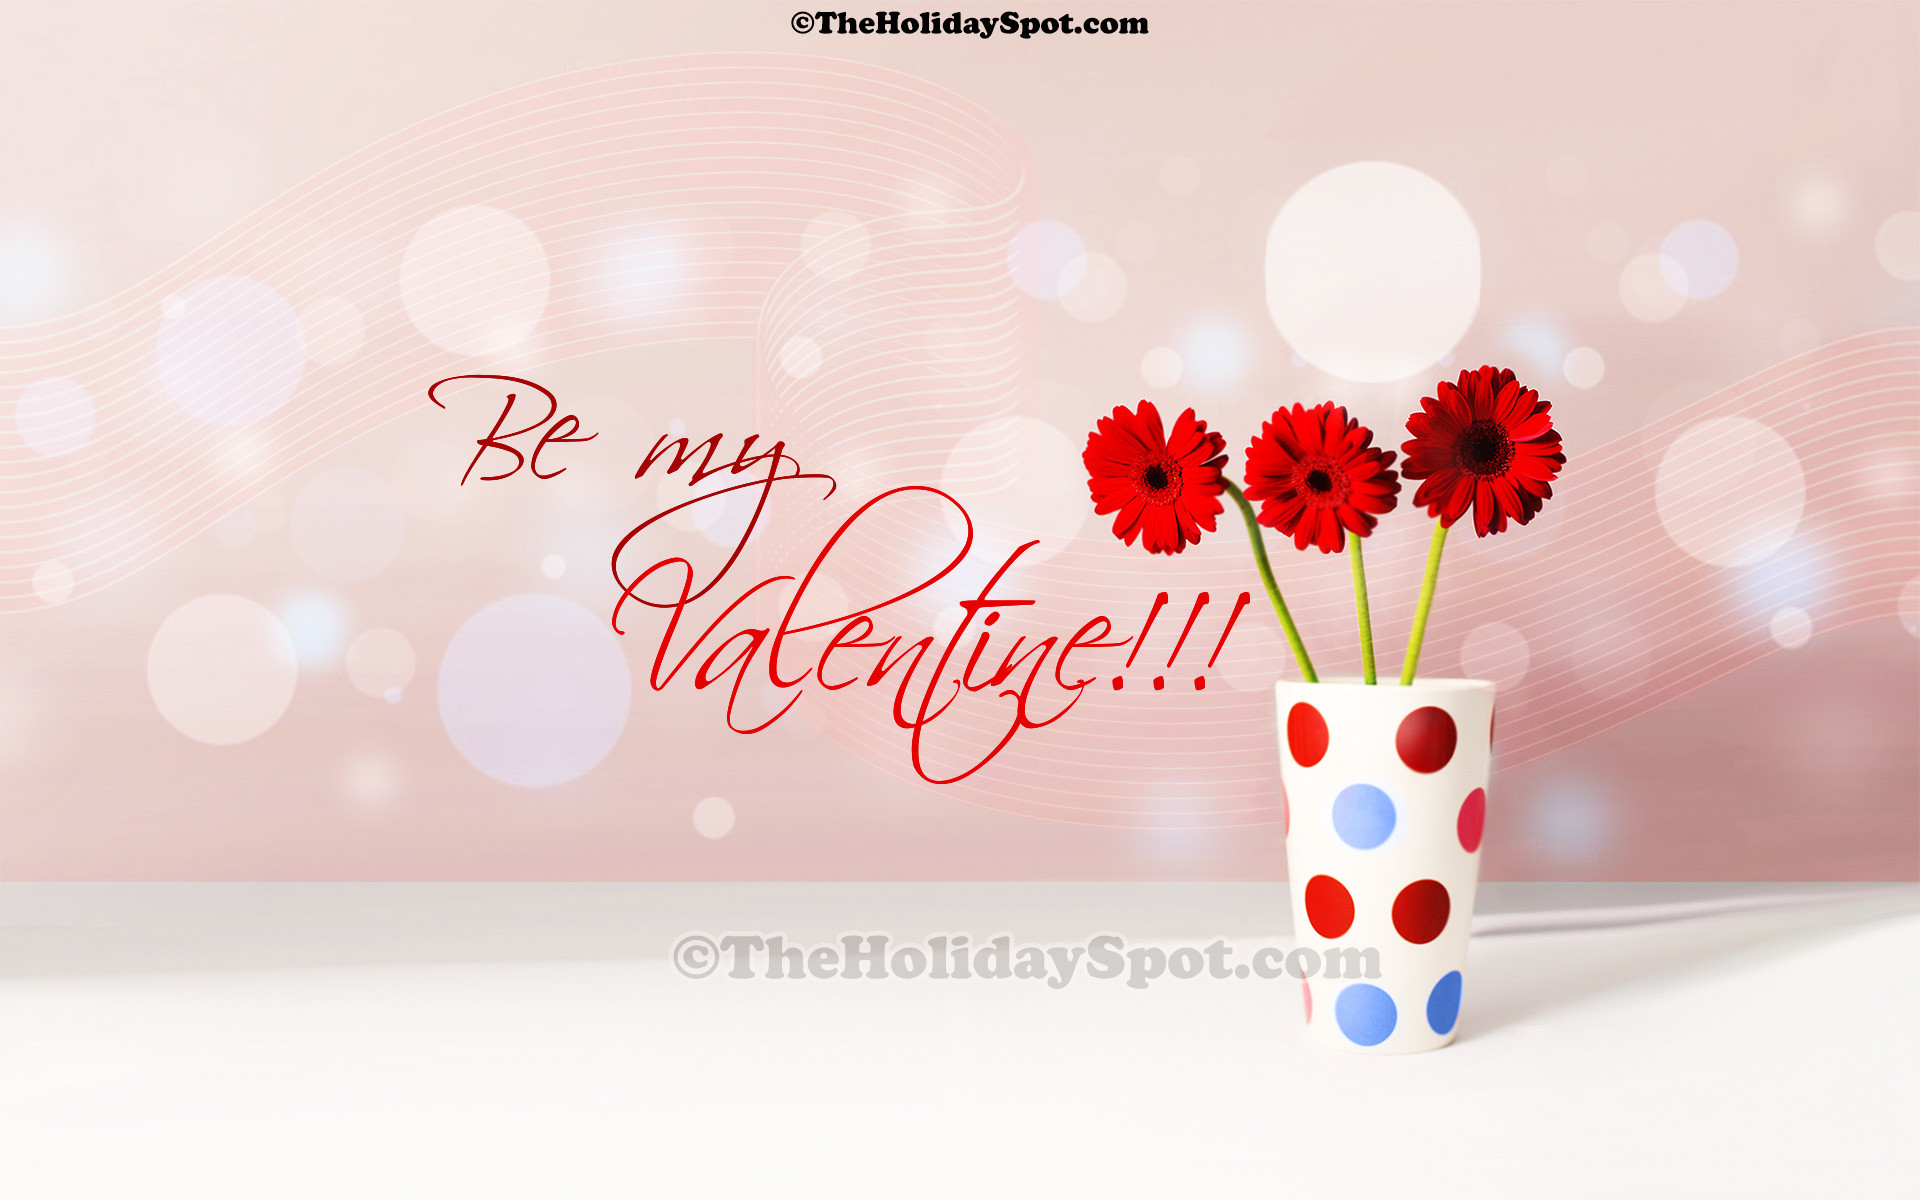 Valentine Wallpaper – Be my Valenine